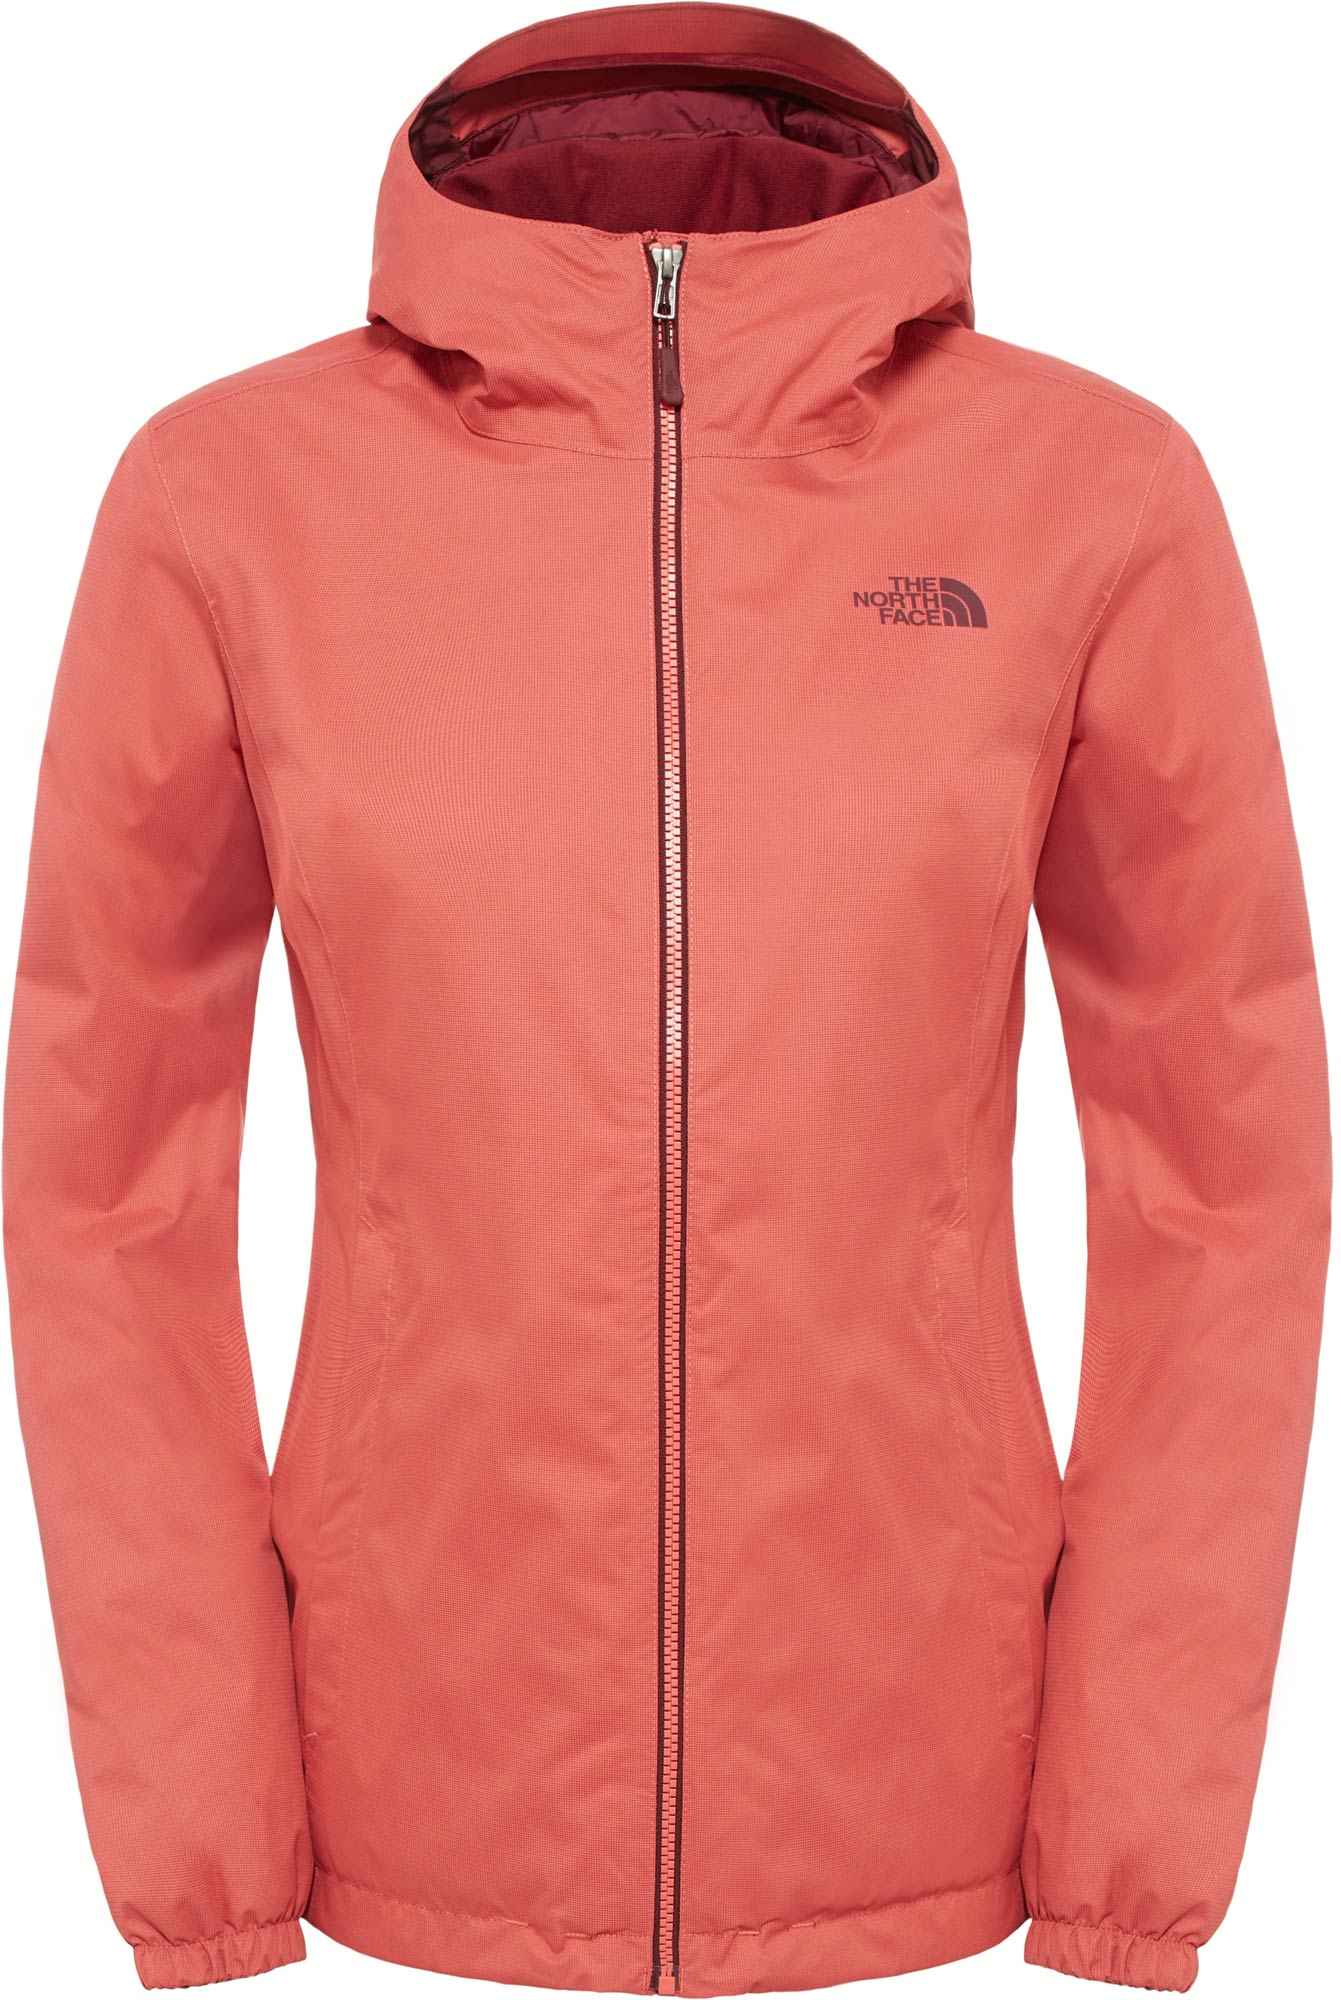 The North Face W QUEST INSULATED JACKET  b2de2954b1f